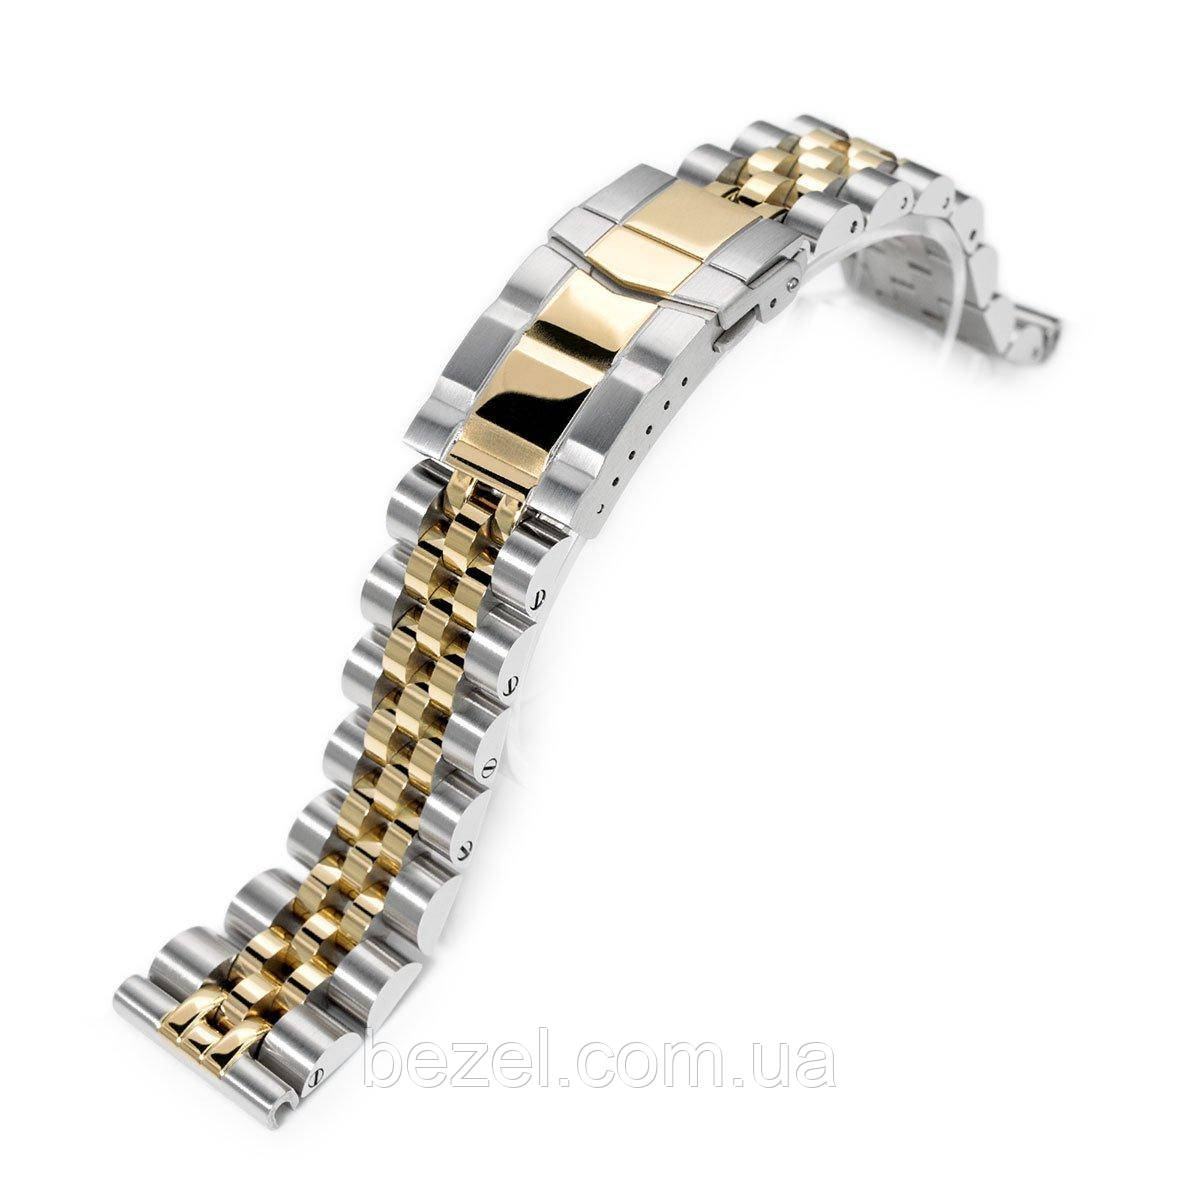 22mm ANGUS Jubilee 316L Stainless Steel Watch Bracelet Straight End 1.8 Universal Ver., Two Tone IP Gold, Submariner Clasp